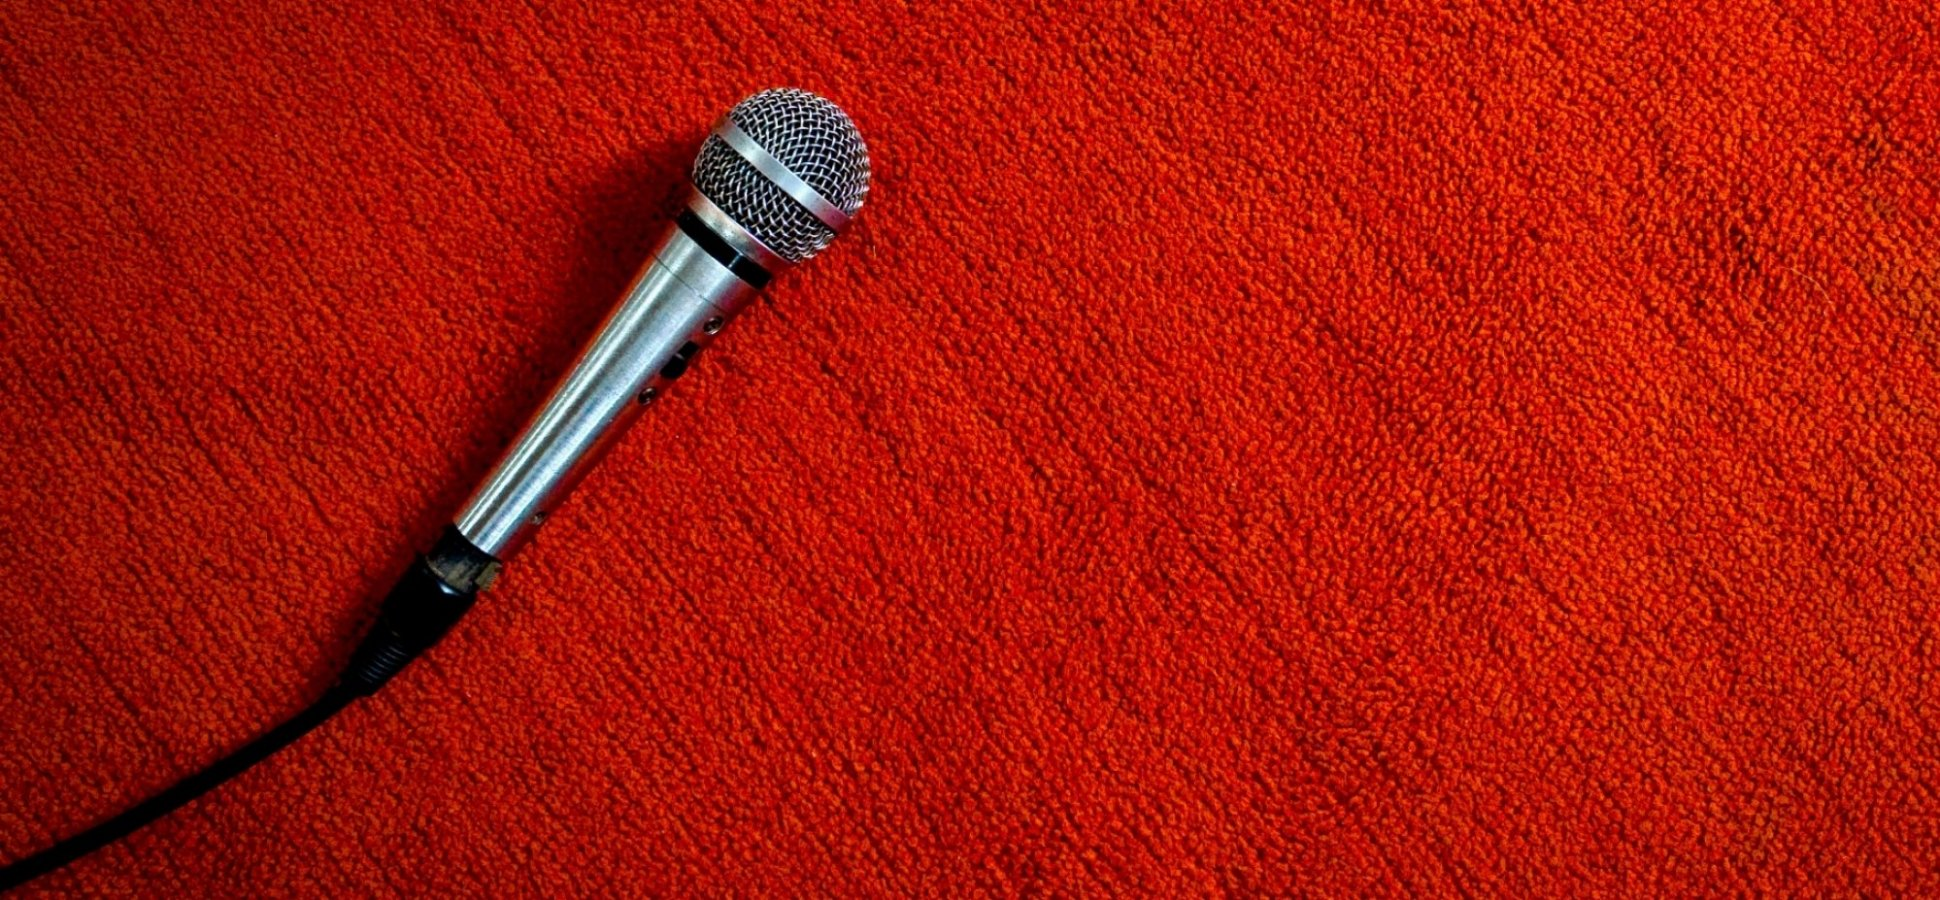 Master the Skill of Public Speaking With These 3 Tricks